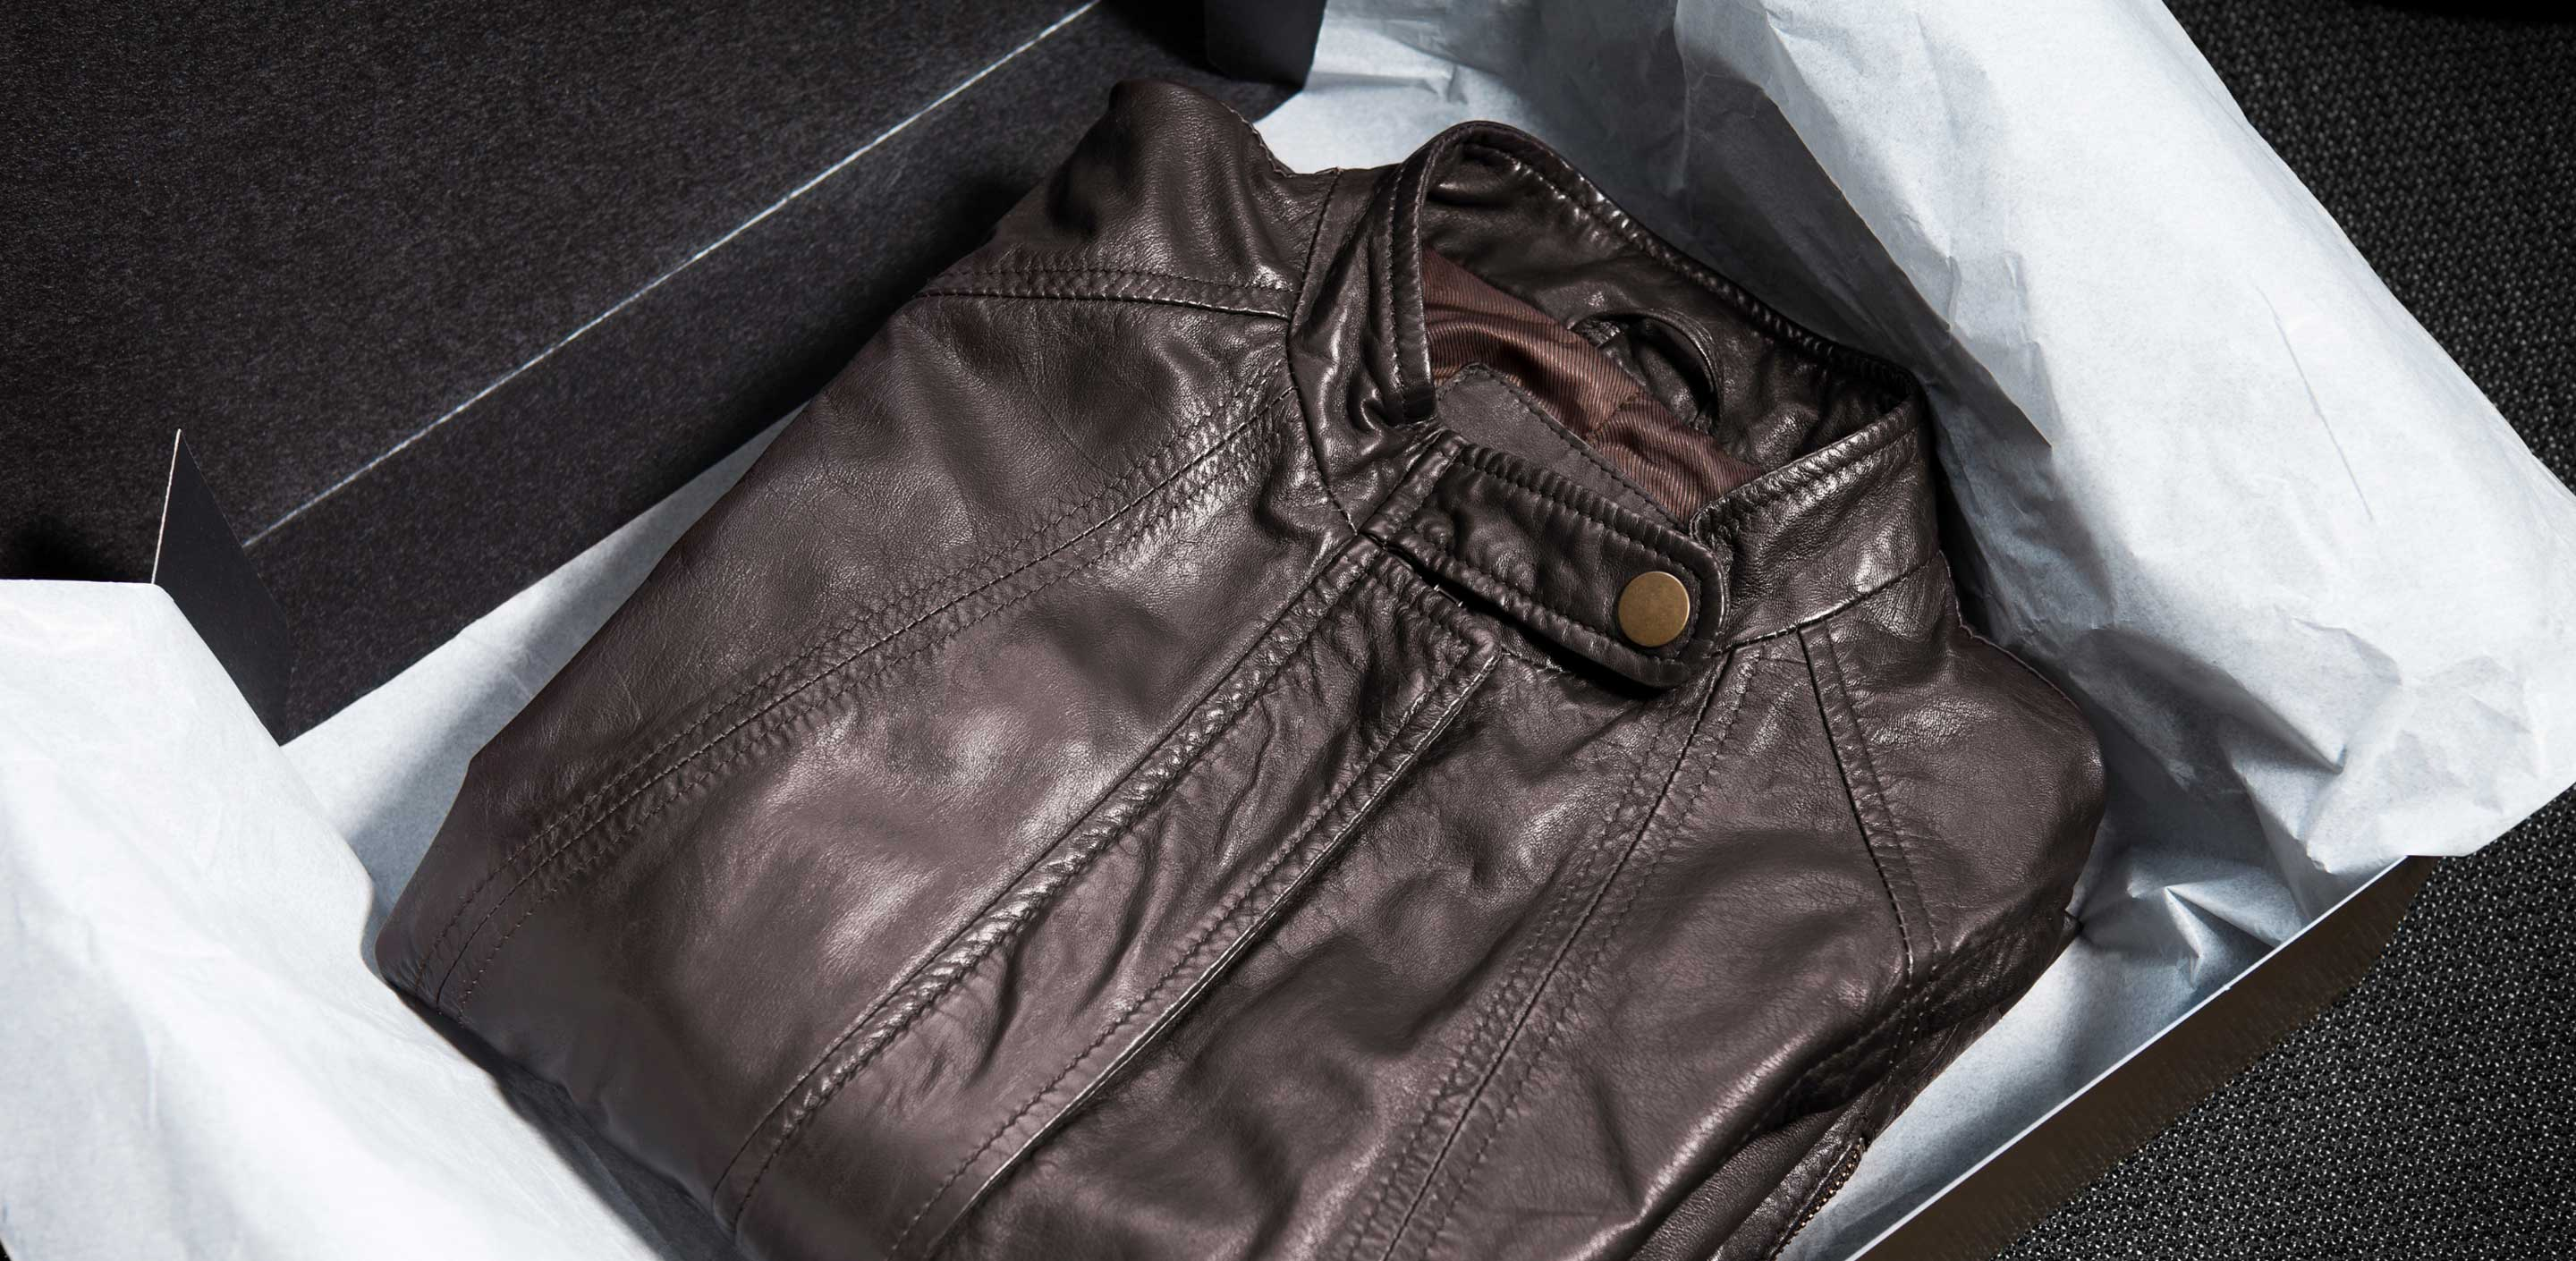 How To Make An Old Leather Jacket Look New?